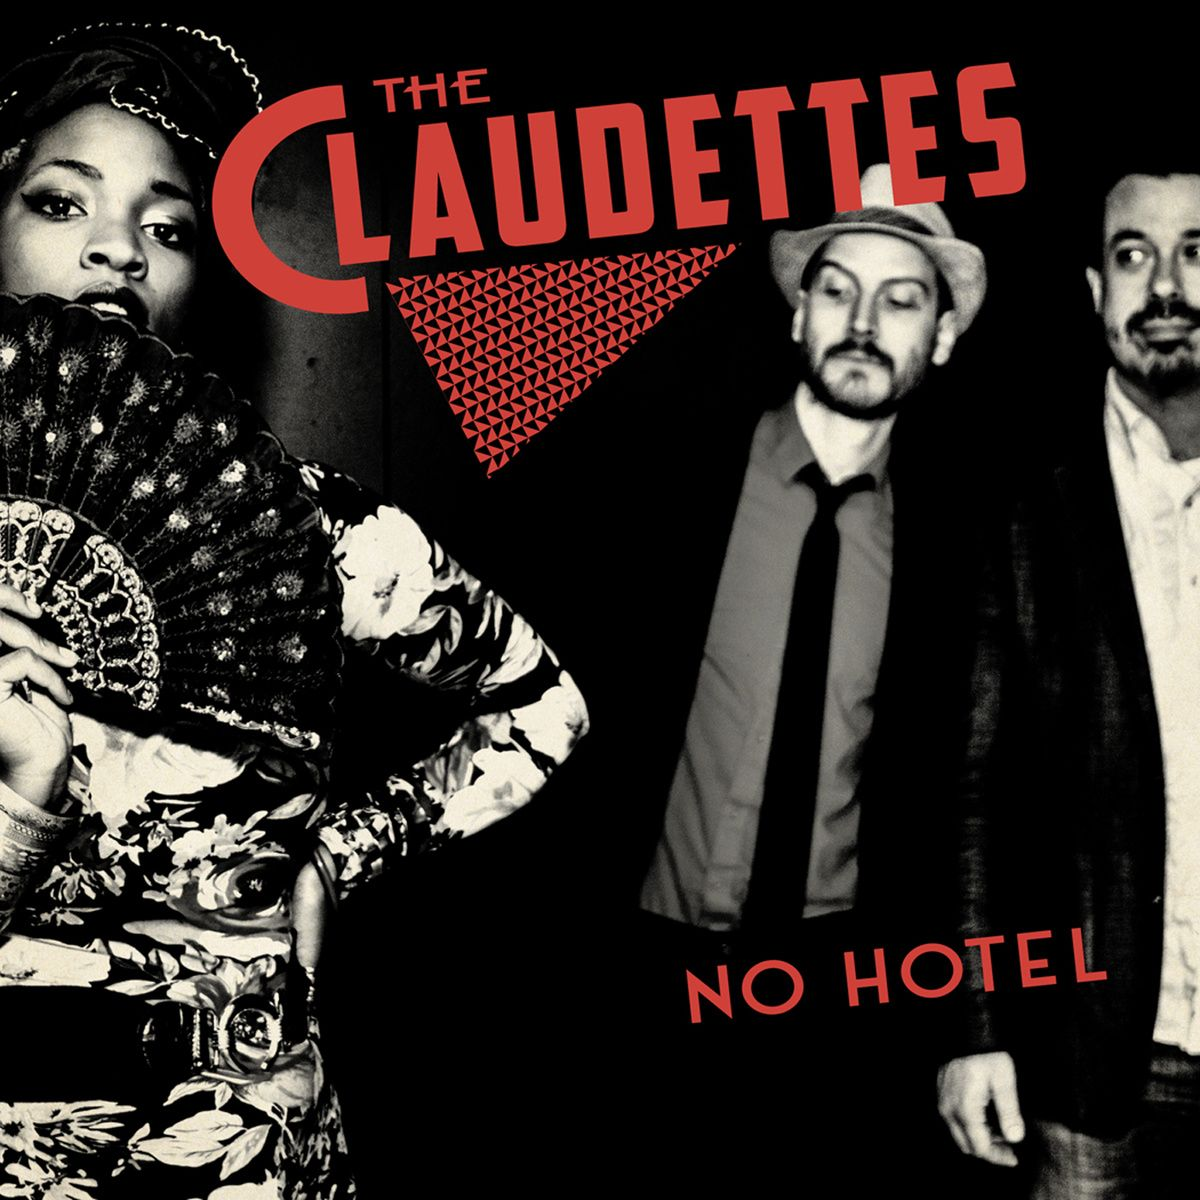 The Claudettes Noel Yellow Dog Spotify Url Release